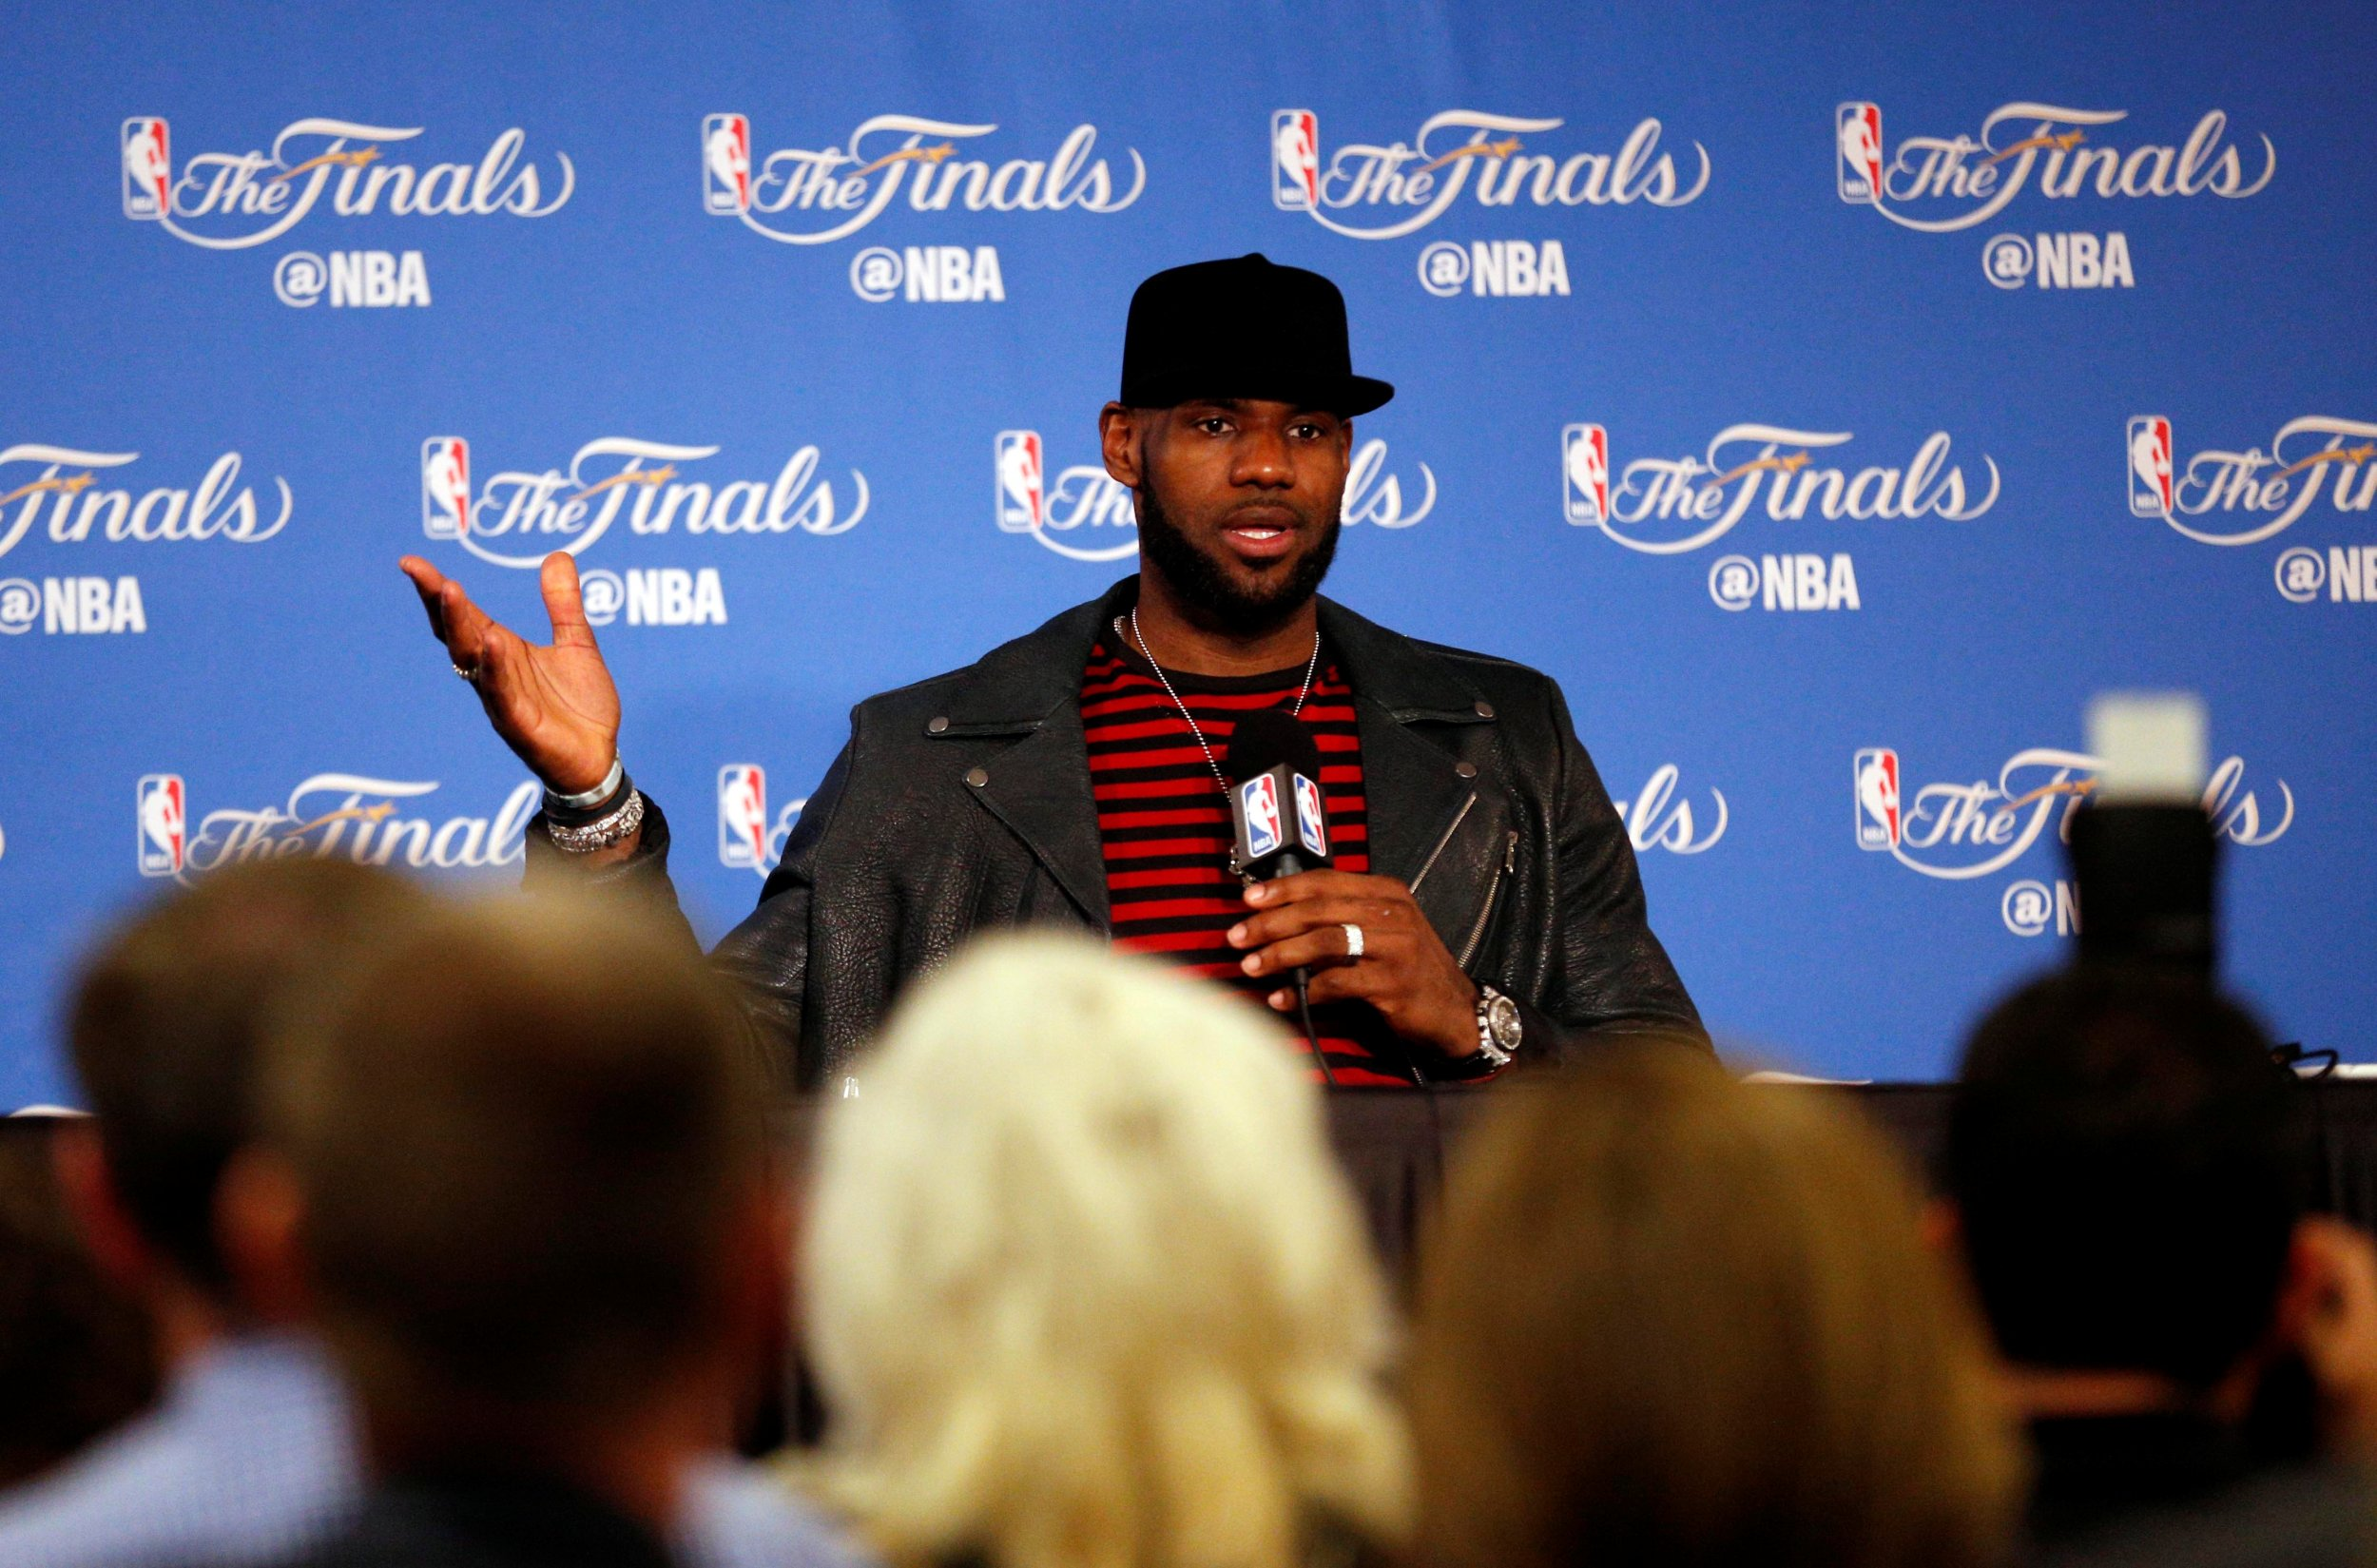 b3db610ace3b Cleveland Cavaliers forward LeBron James at a press conference after game  five of the 2017 NBA Finals against the Golden State Warriors at Oracle  Arena.